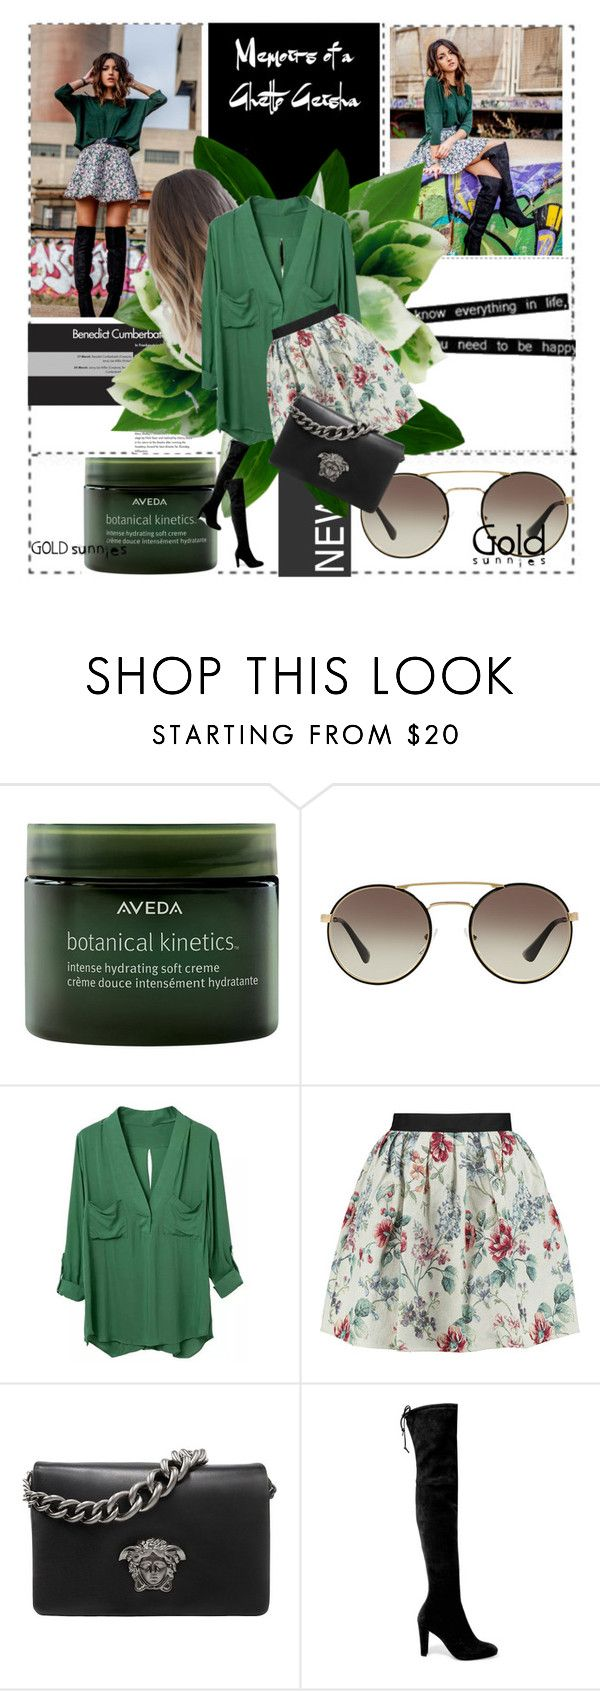 """""""Untitled #137"""" by doyougotabae17 ❤ liked on Polyvore featuring Lori's Shoes, Aveda, Prada, Raoul, Versace and Stuart Weitzman"""